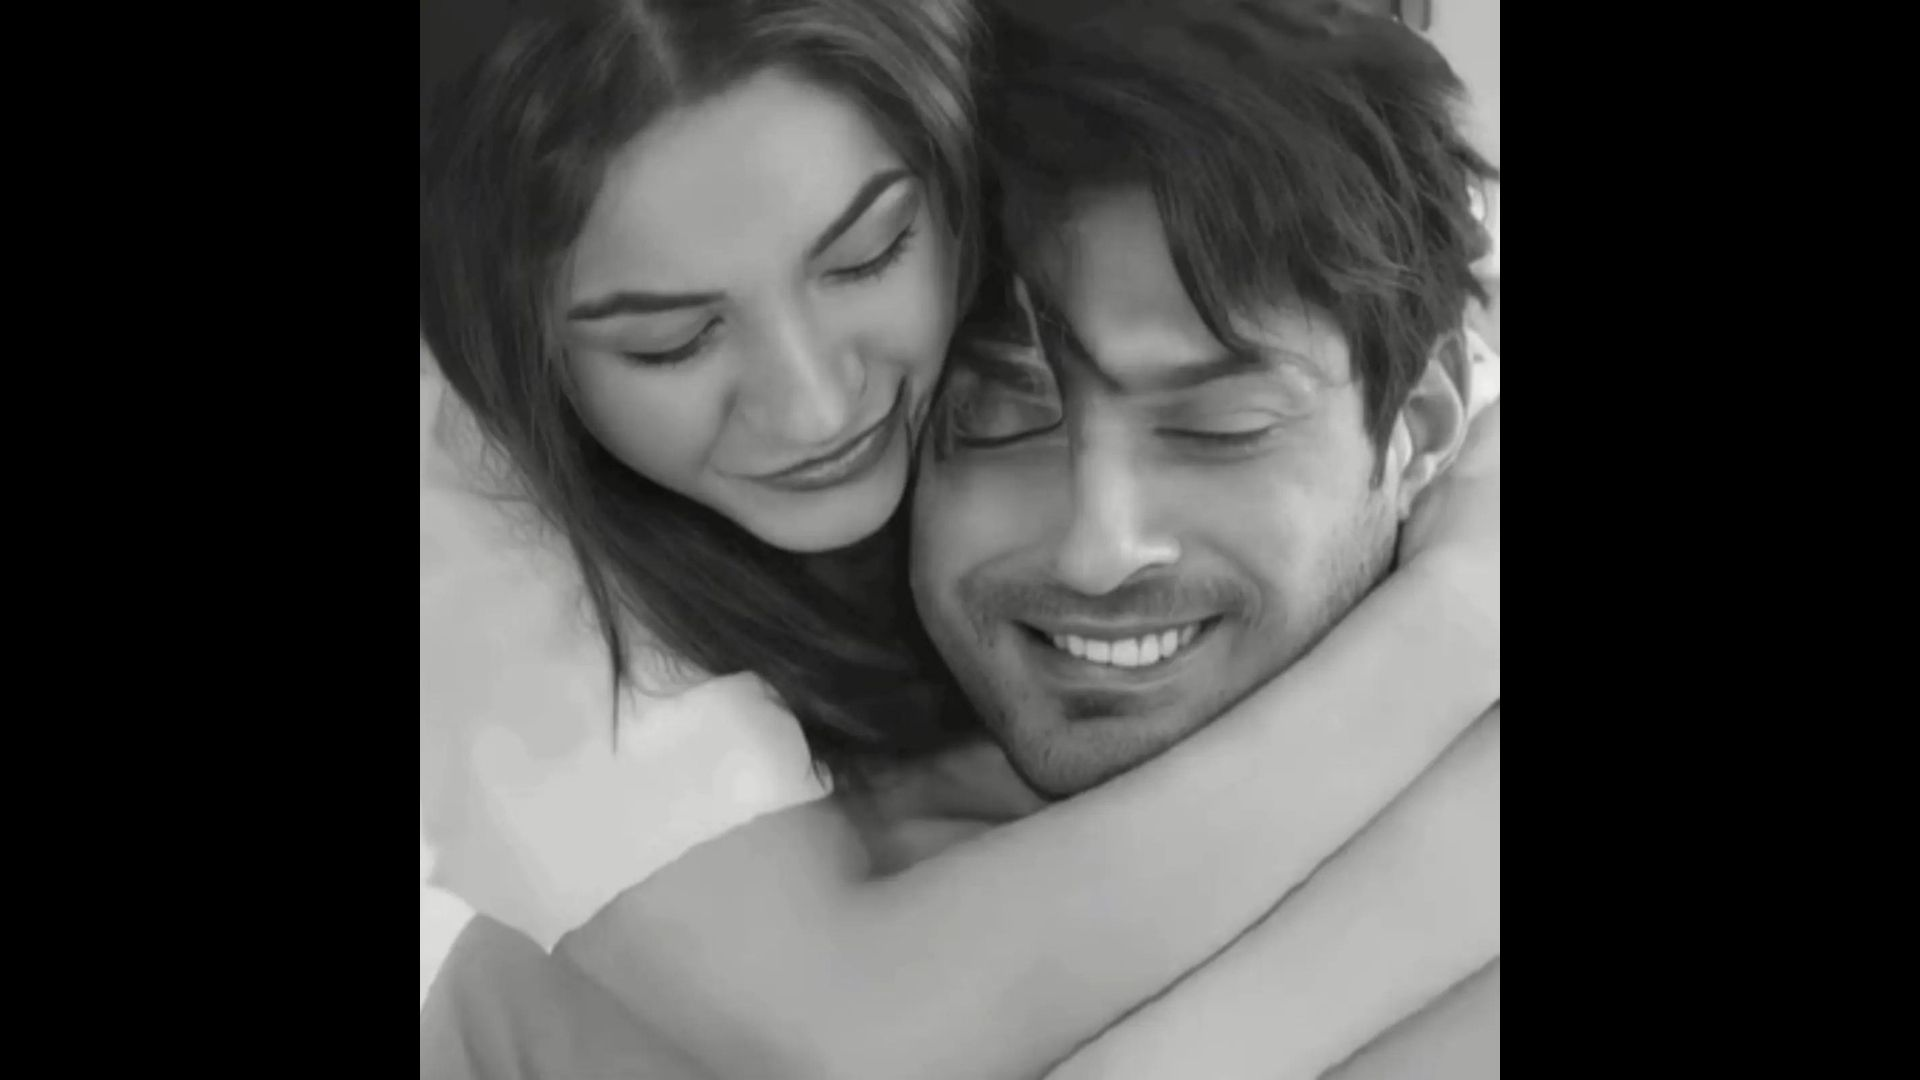 Shehnaaz Gill Finally Returns To Social Media With Sidharth Shukla's Post; Gill To Pay Tribute To Her Late Lover In The Most Heart-breaking Way